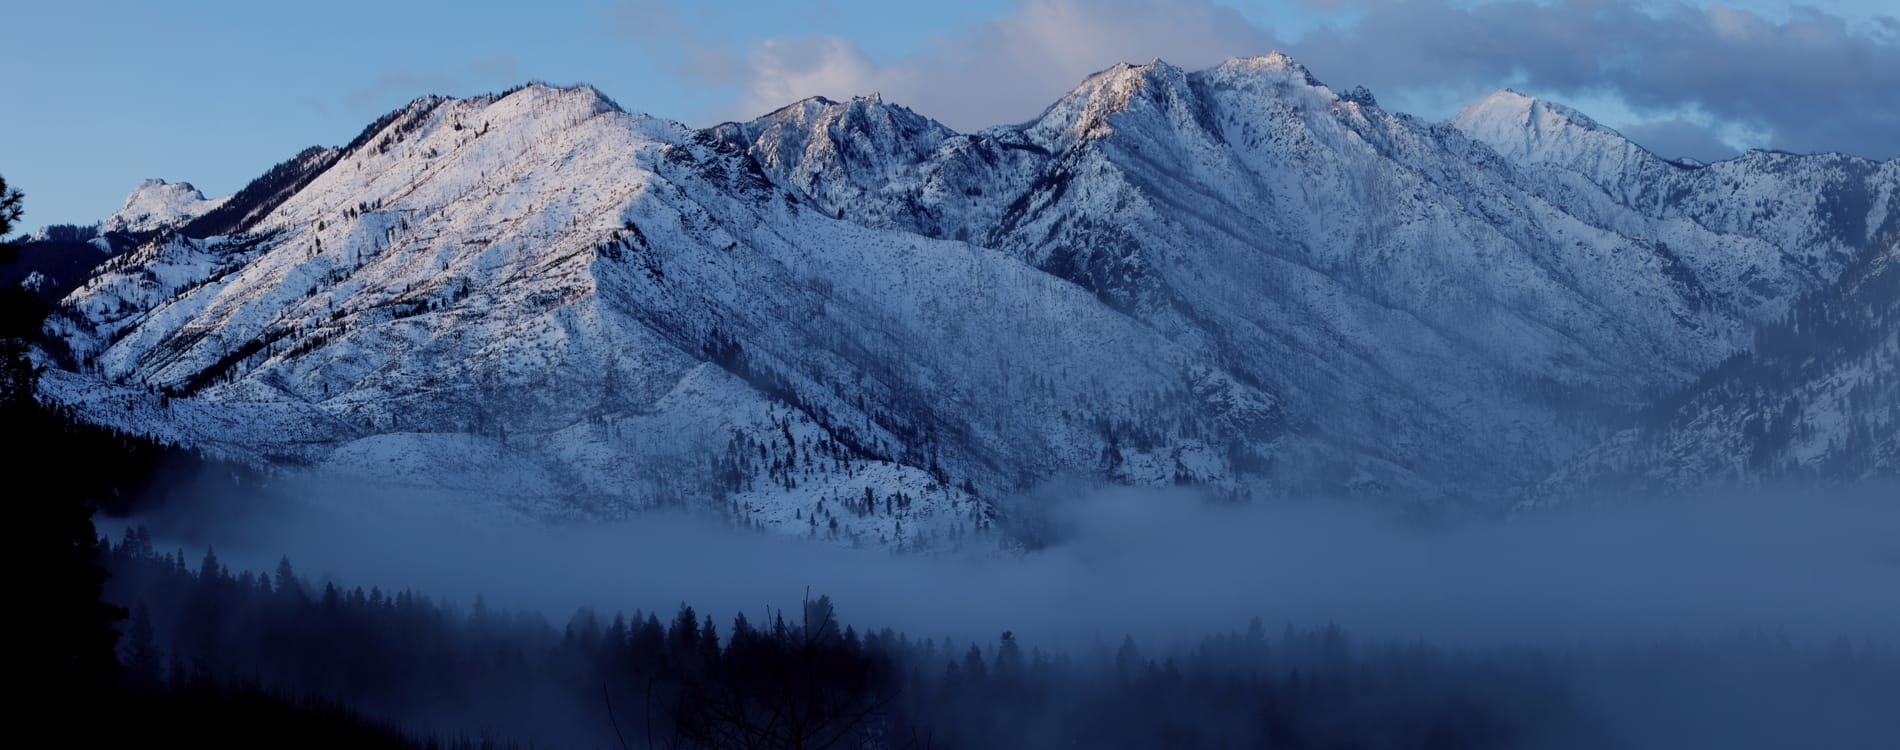 Leavenworth, WA - Morning View over Cascade Mountains